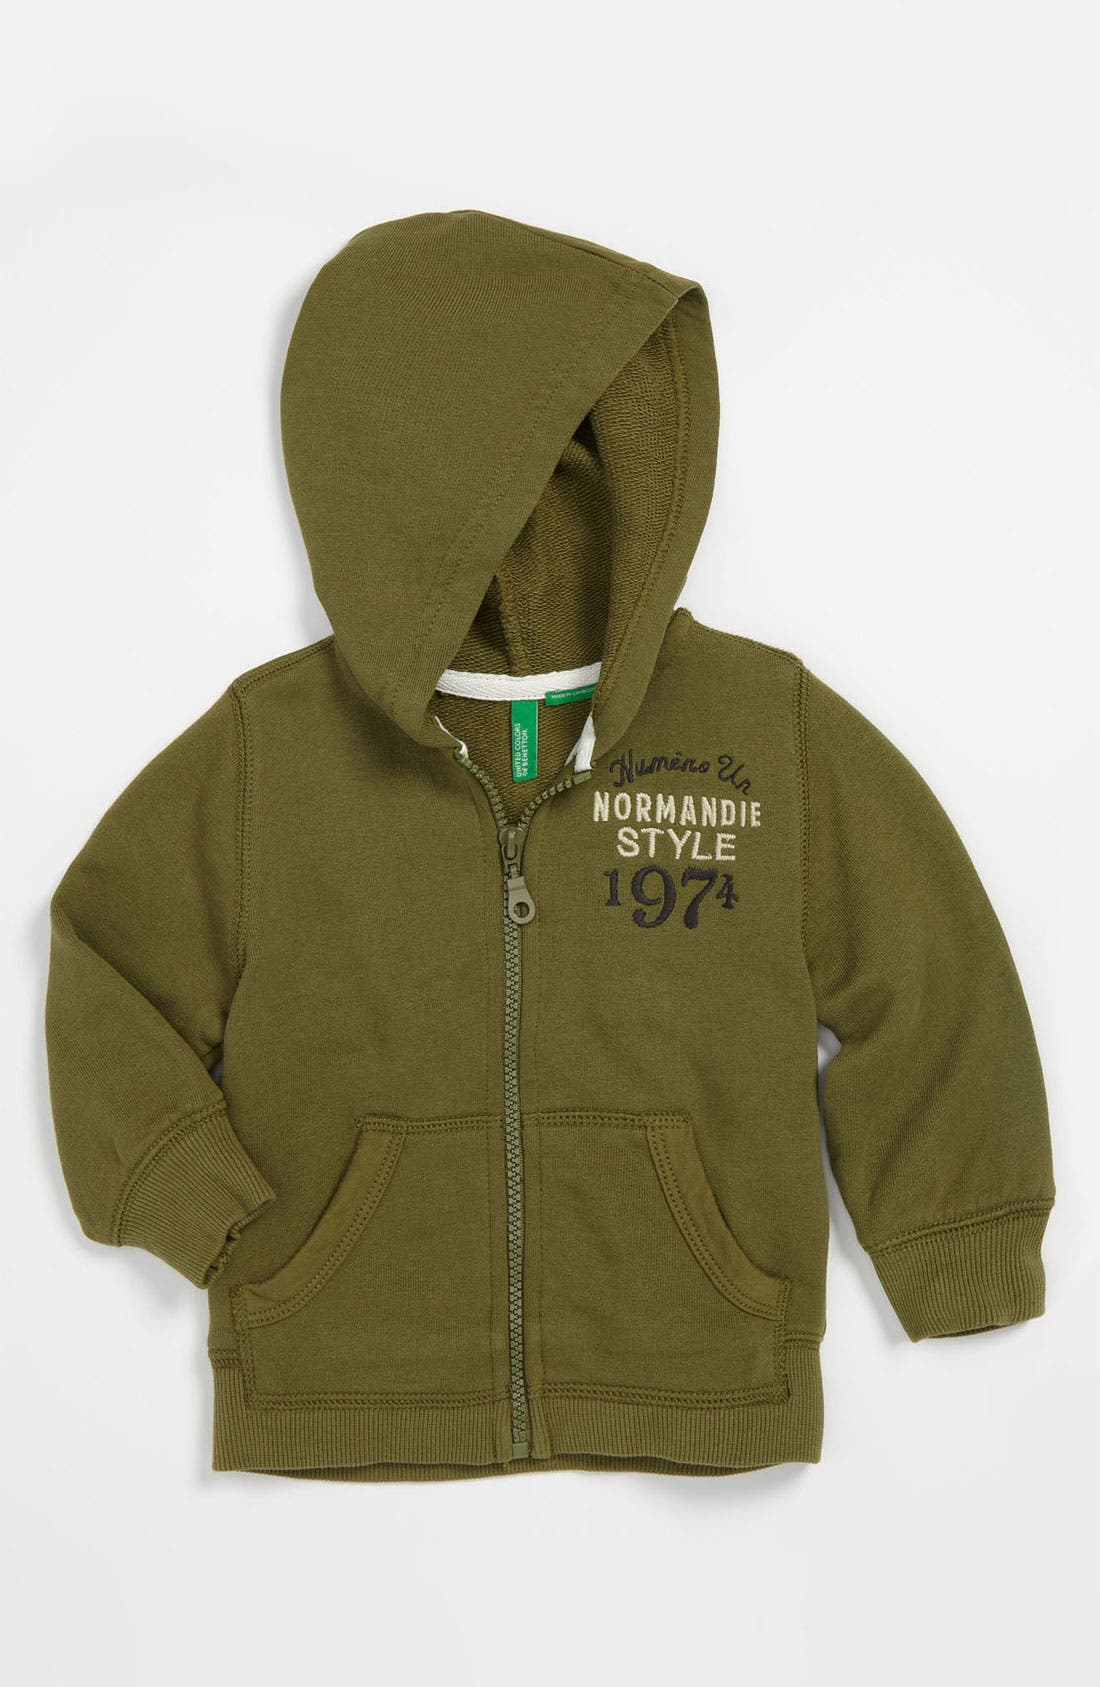 Alternate Image 1 Selected - United Colors of Benetton Kids 'Normandie' Hoodie (Toddler)